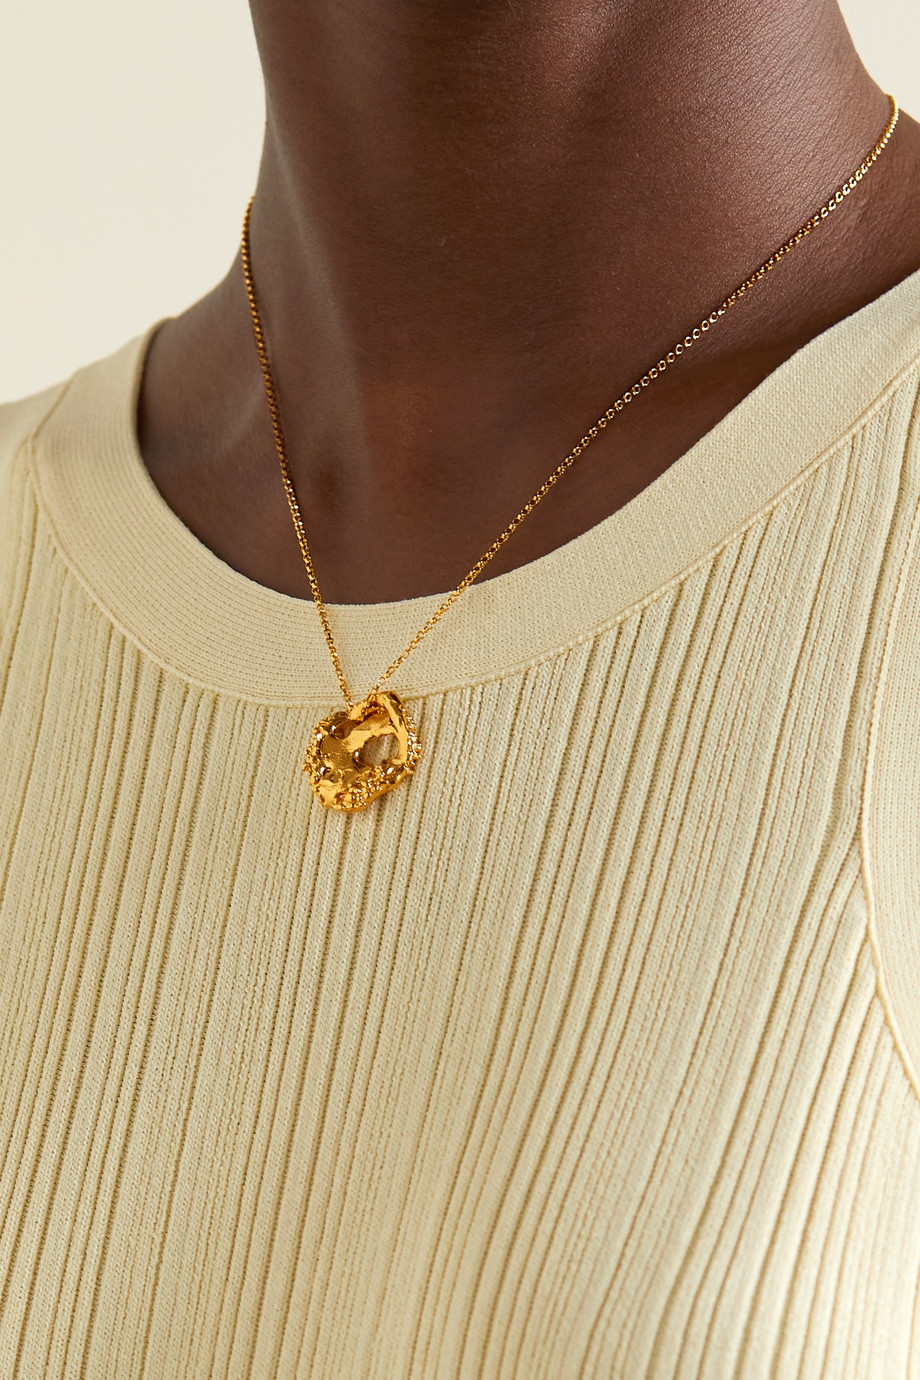 Alighieri The Craters We Know gold-plated necklace